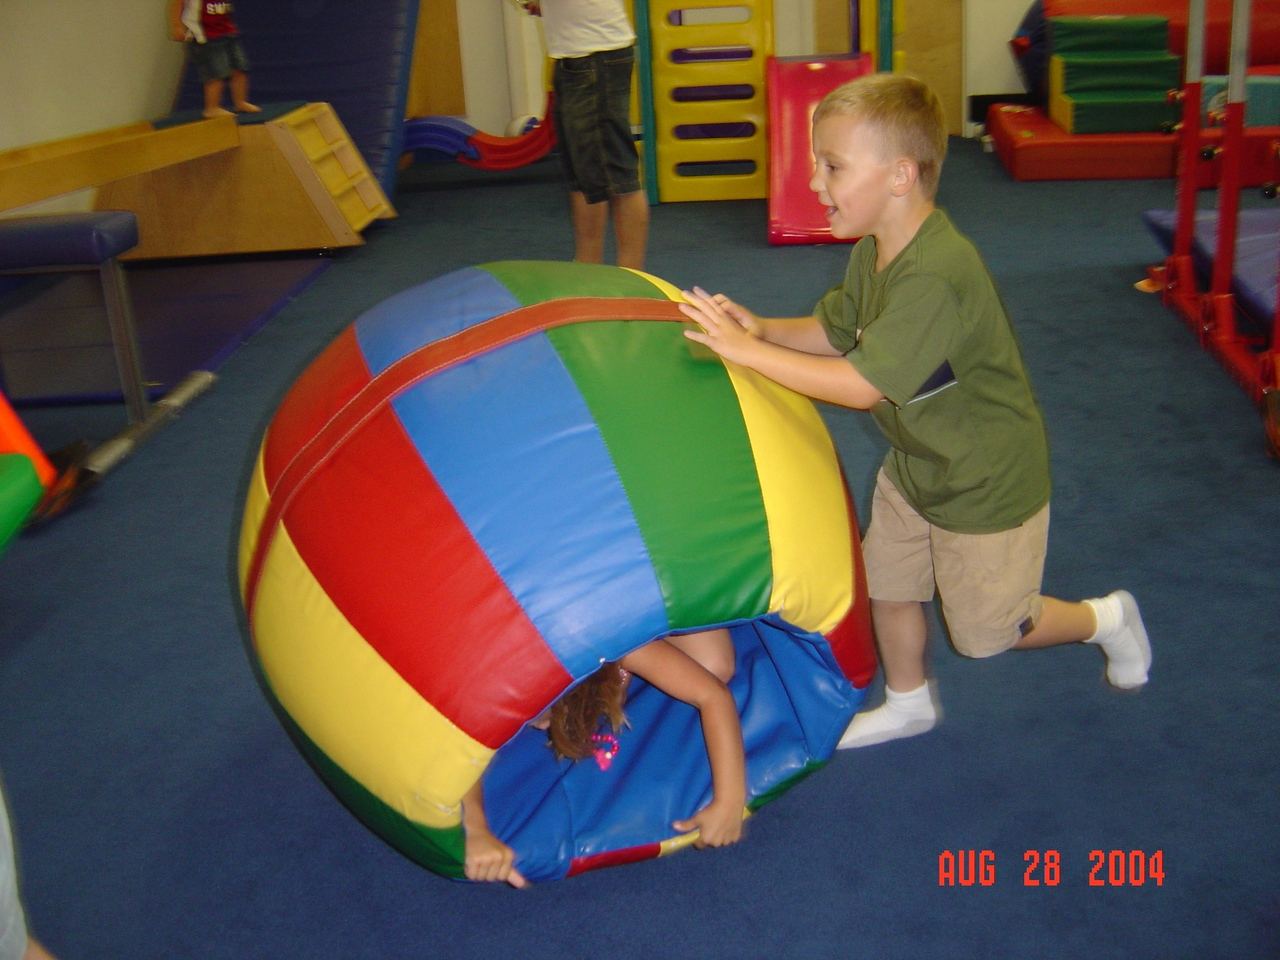 Tyler_Rolls_Natalie_at_her_party_08-28-04